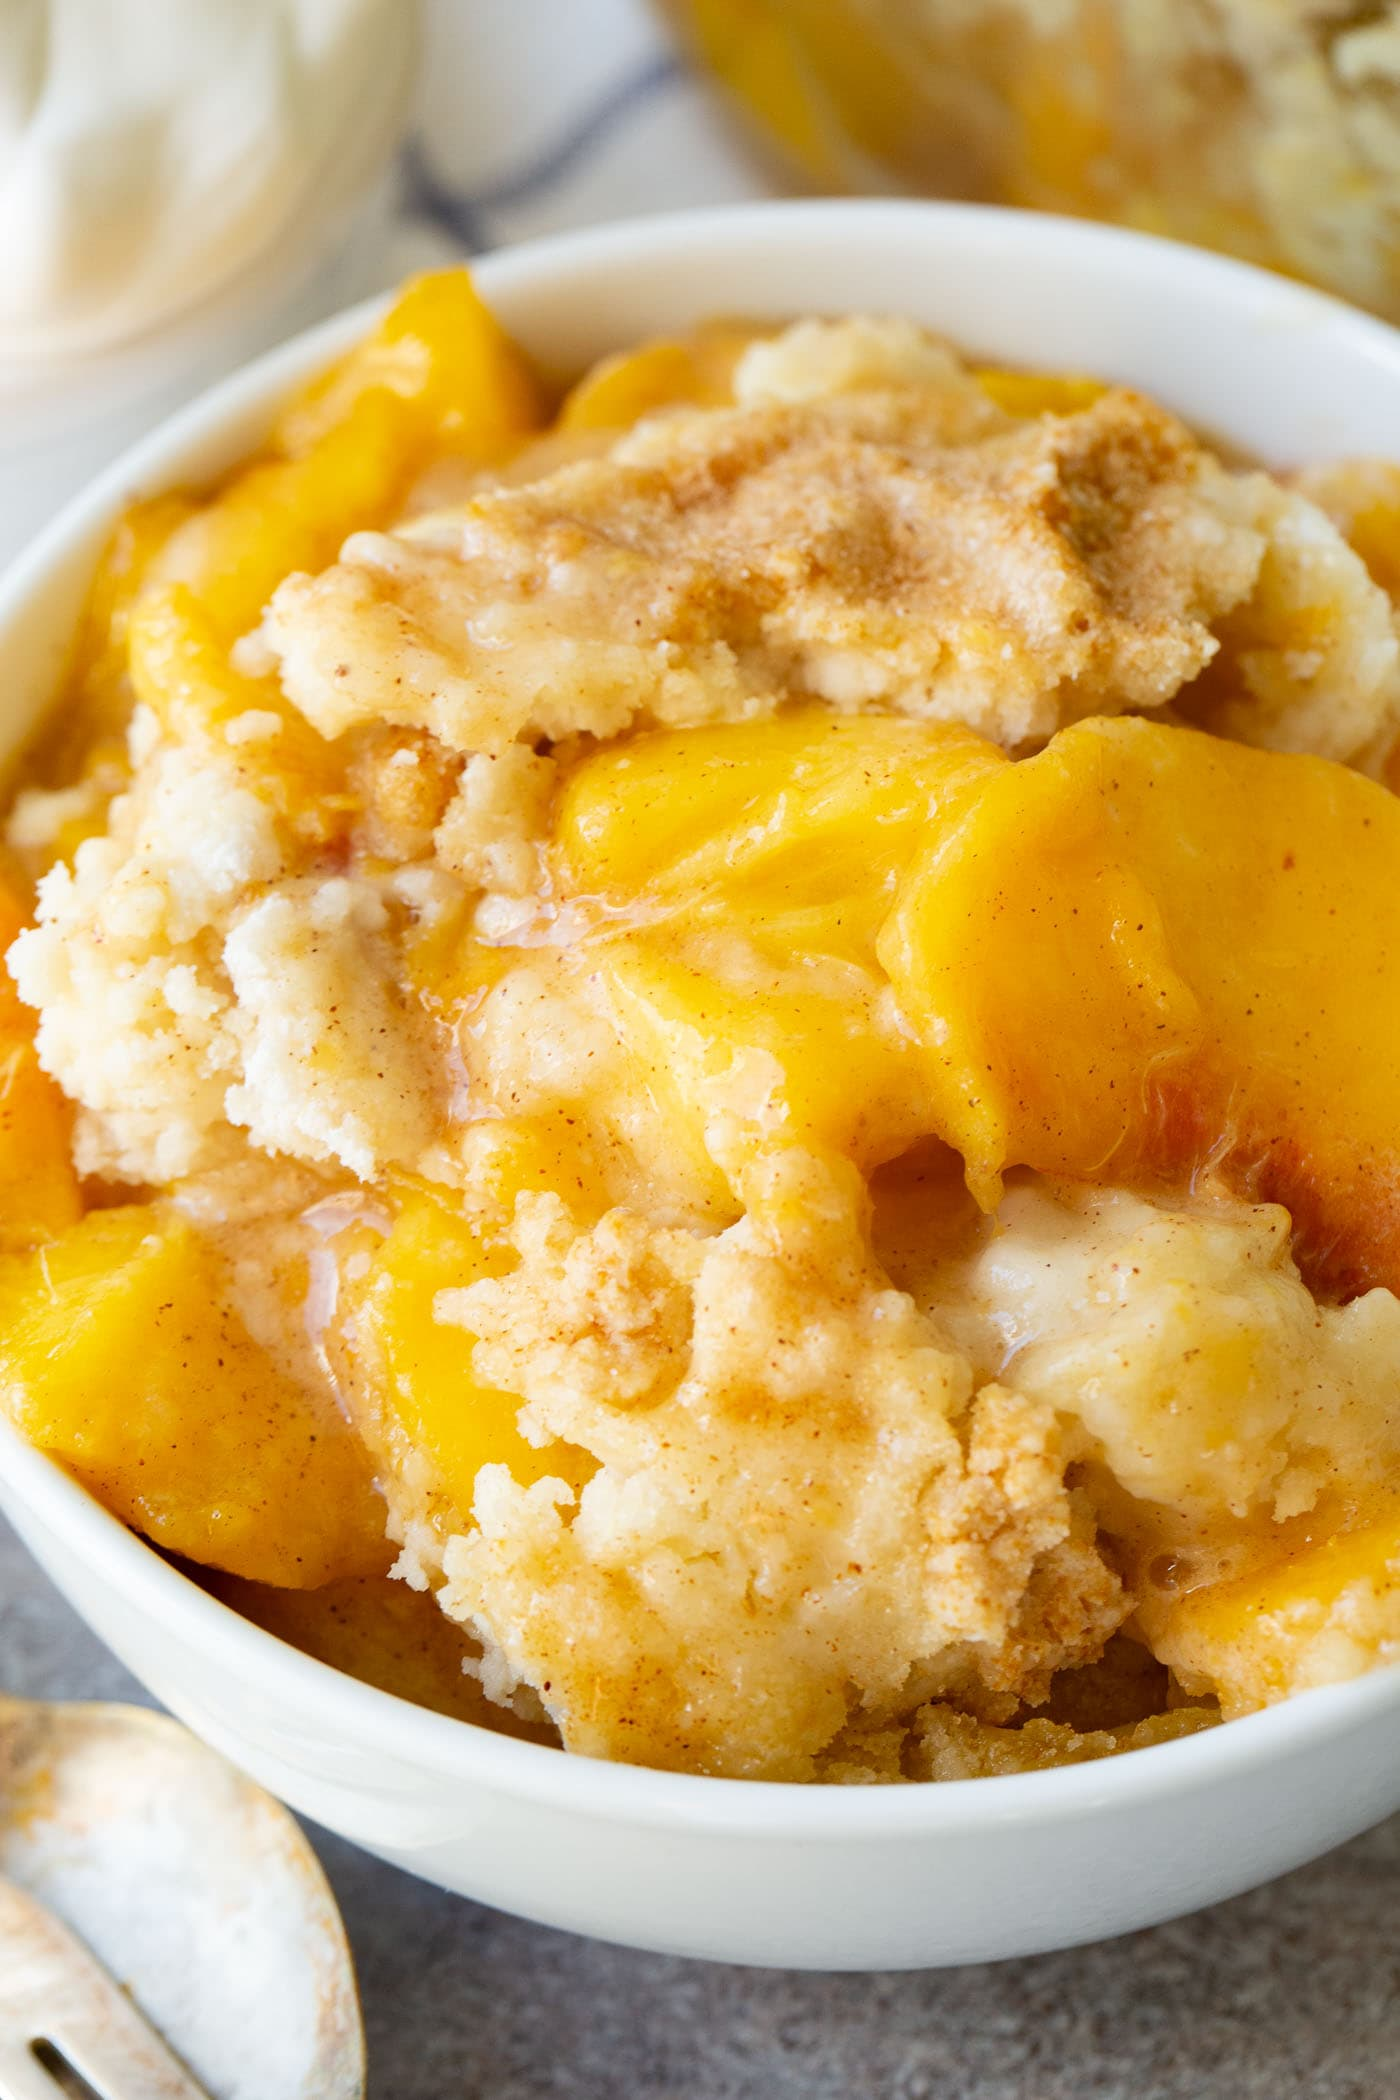 a bowl of instant pot peach cobbler with cake mix topping